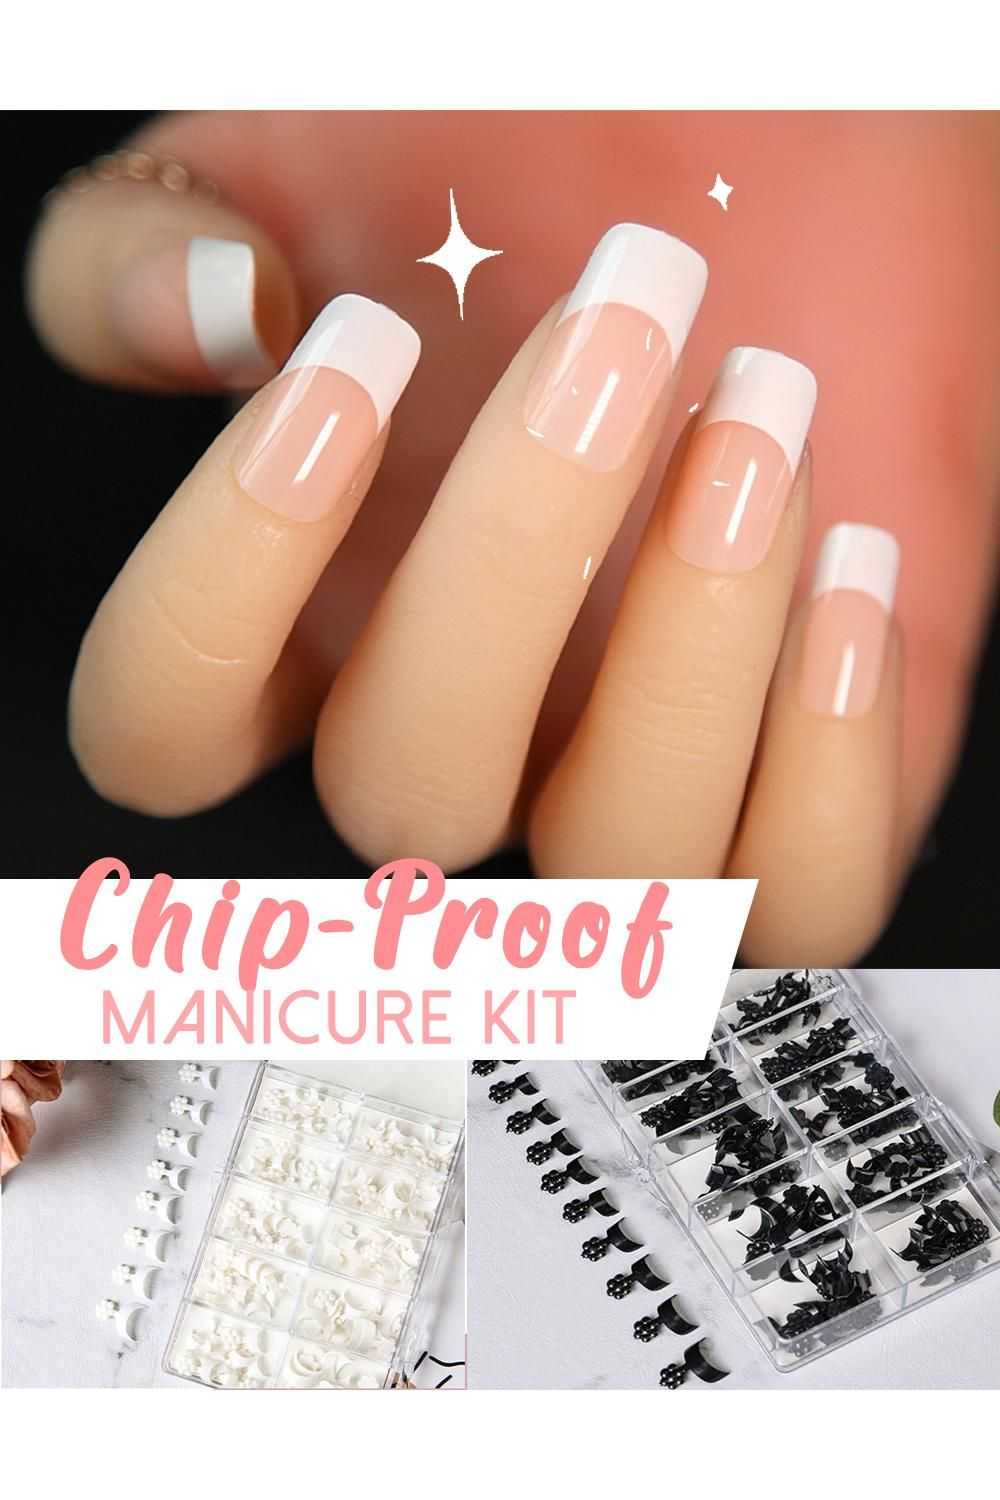 French Chip Proof Manicure Kit Video In 2020 Manicure Manicure Kit Coffin Nails Designs